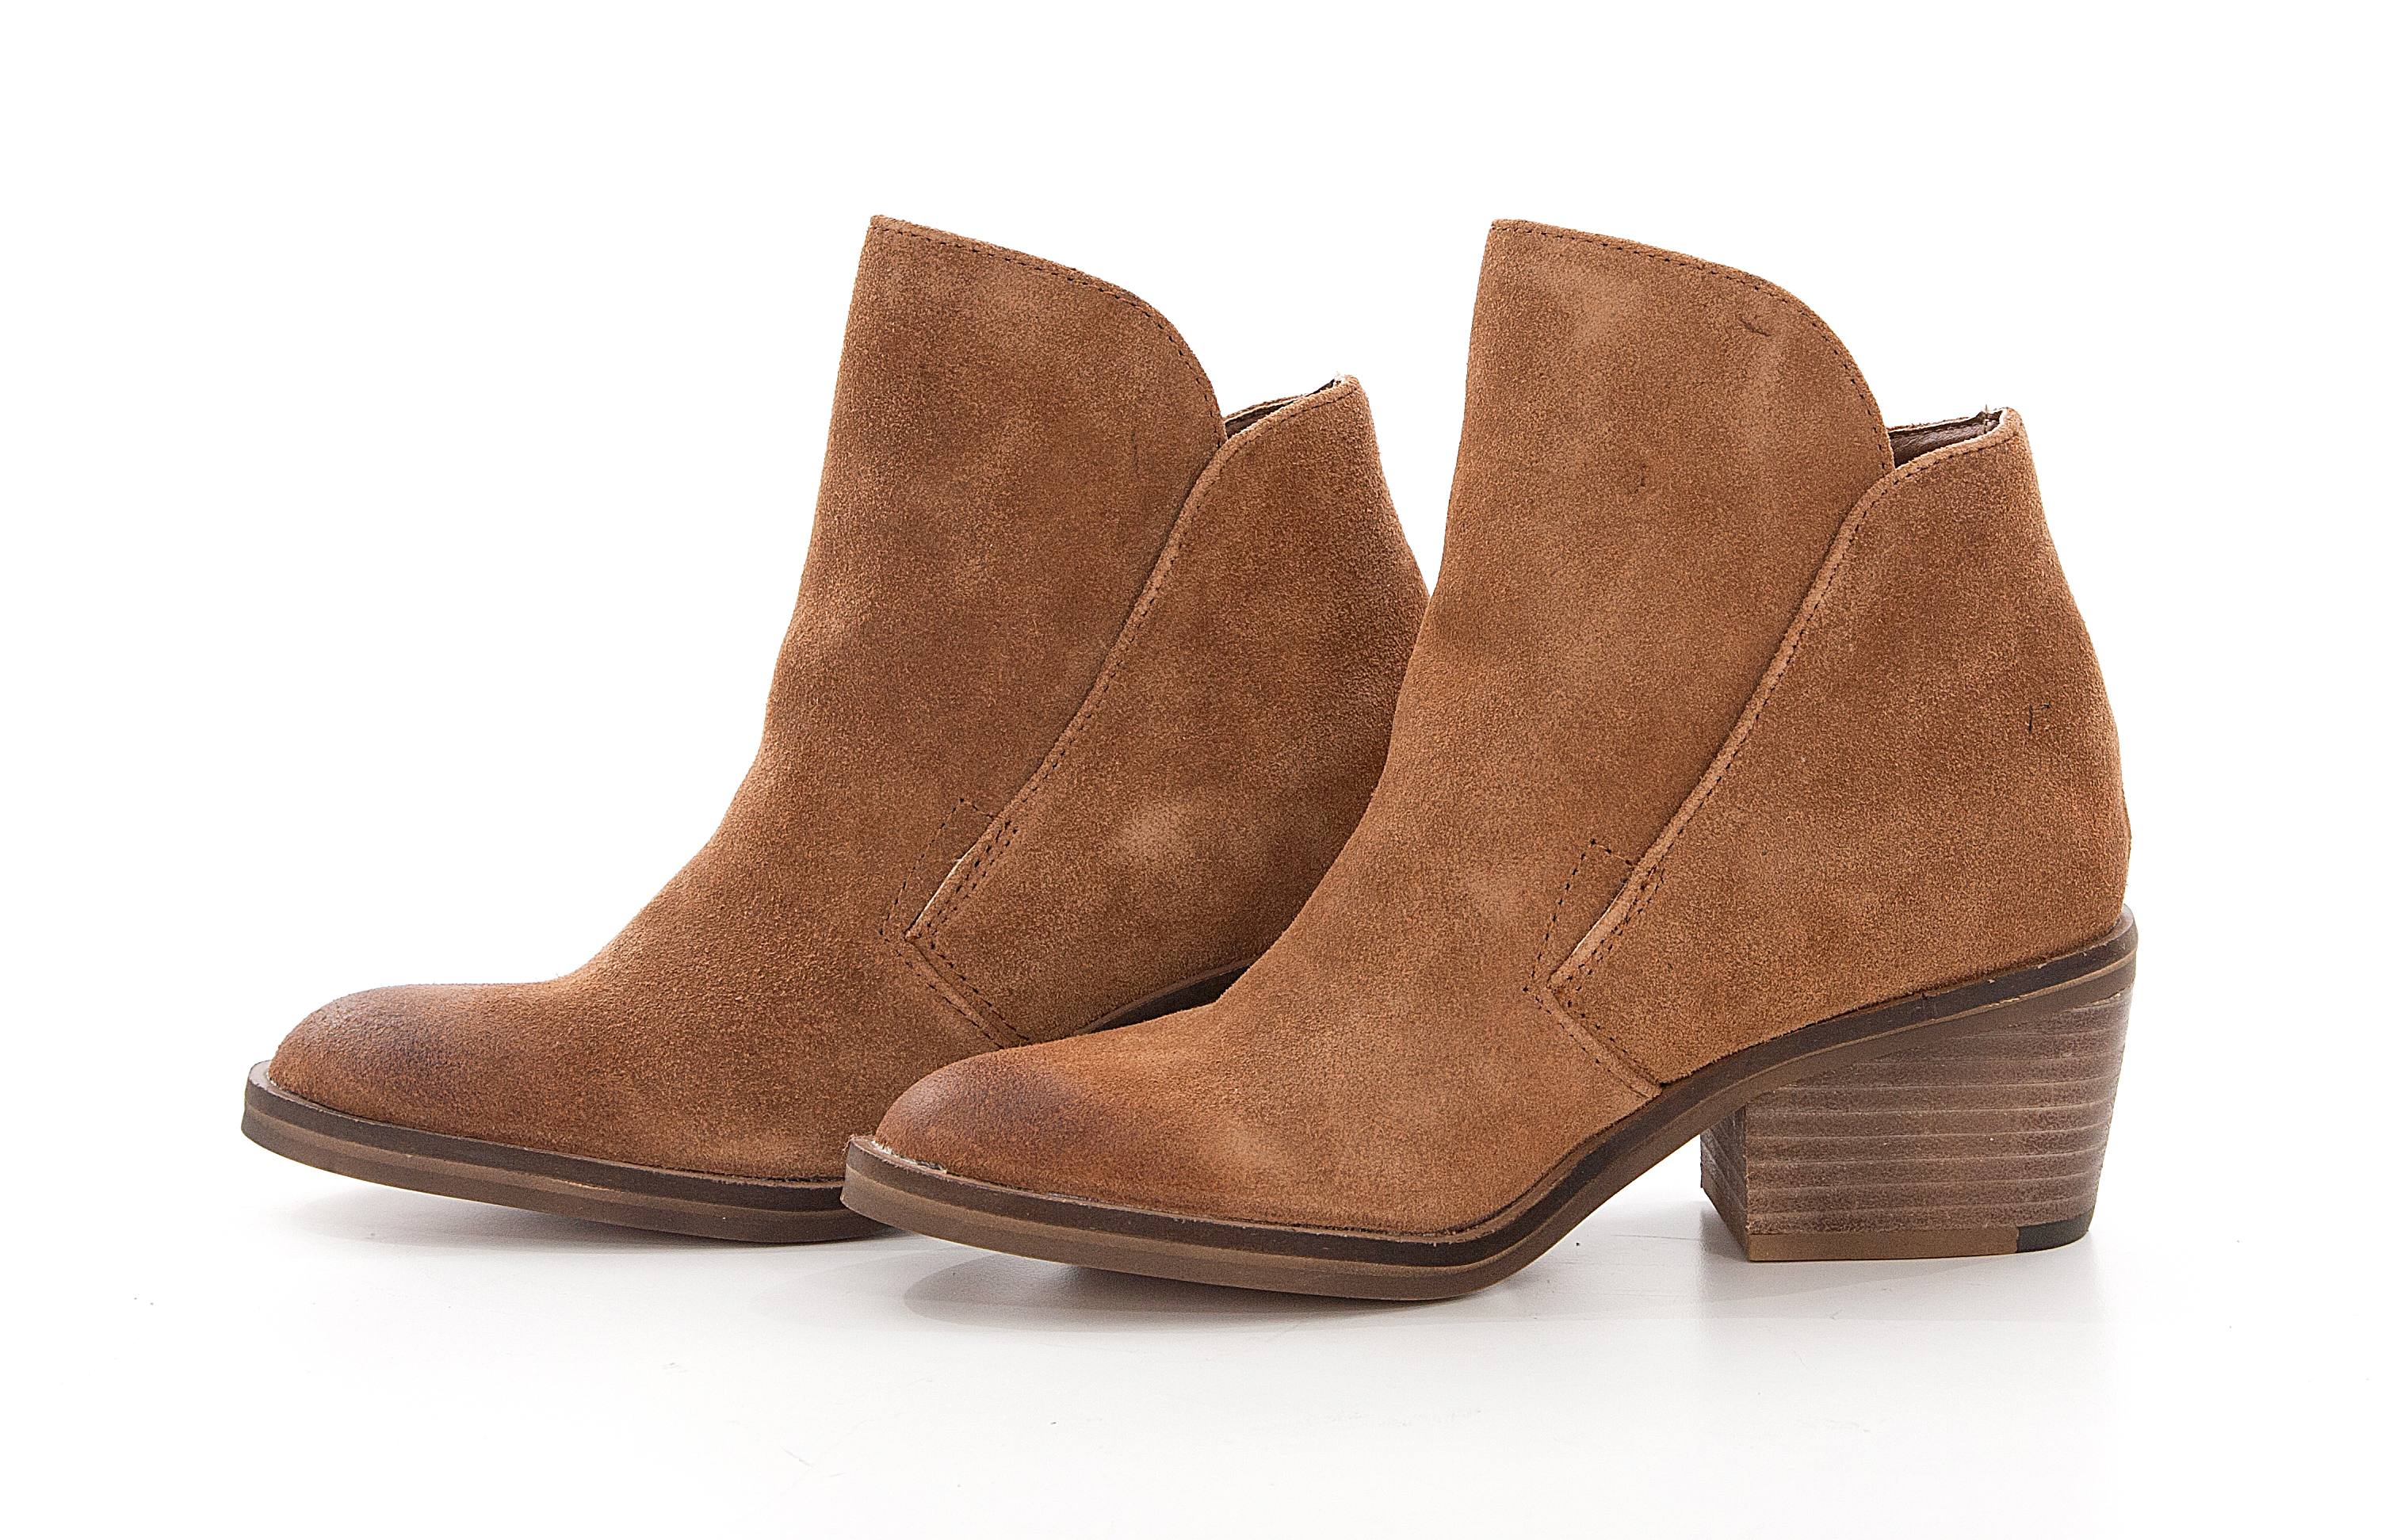 Short Amp Sweet Ankle Boots For Fall Inregister